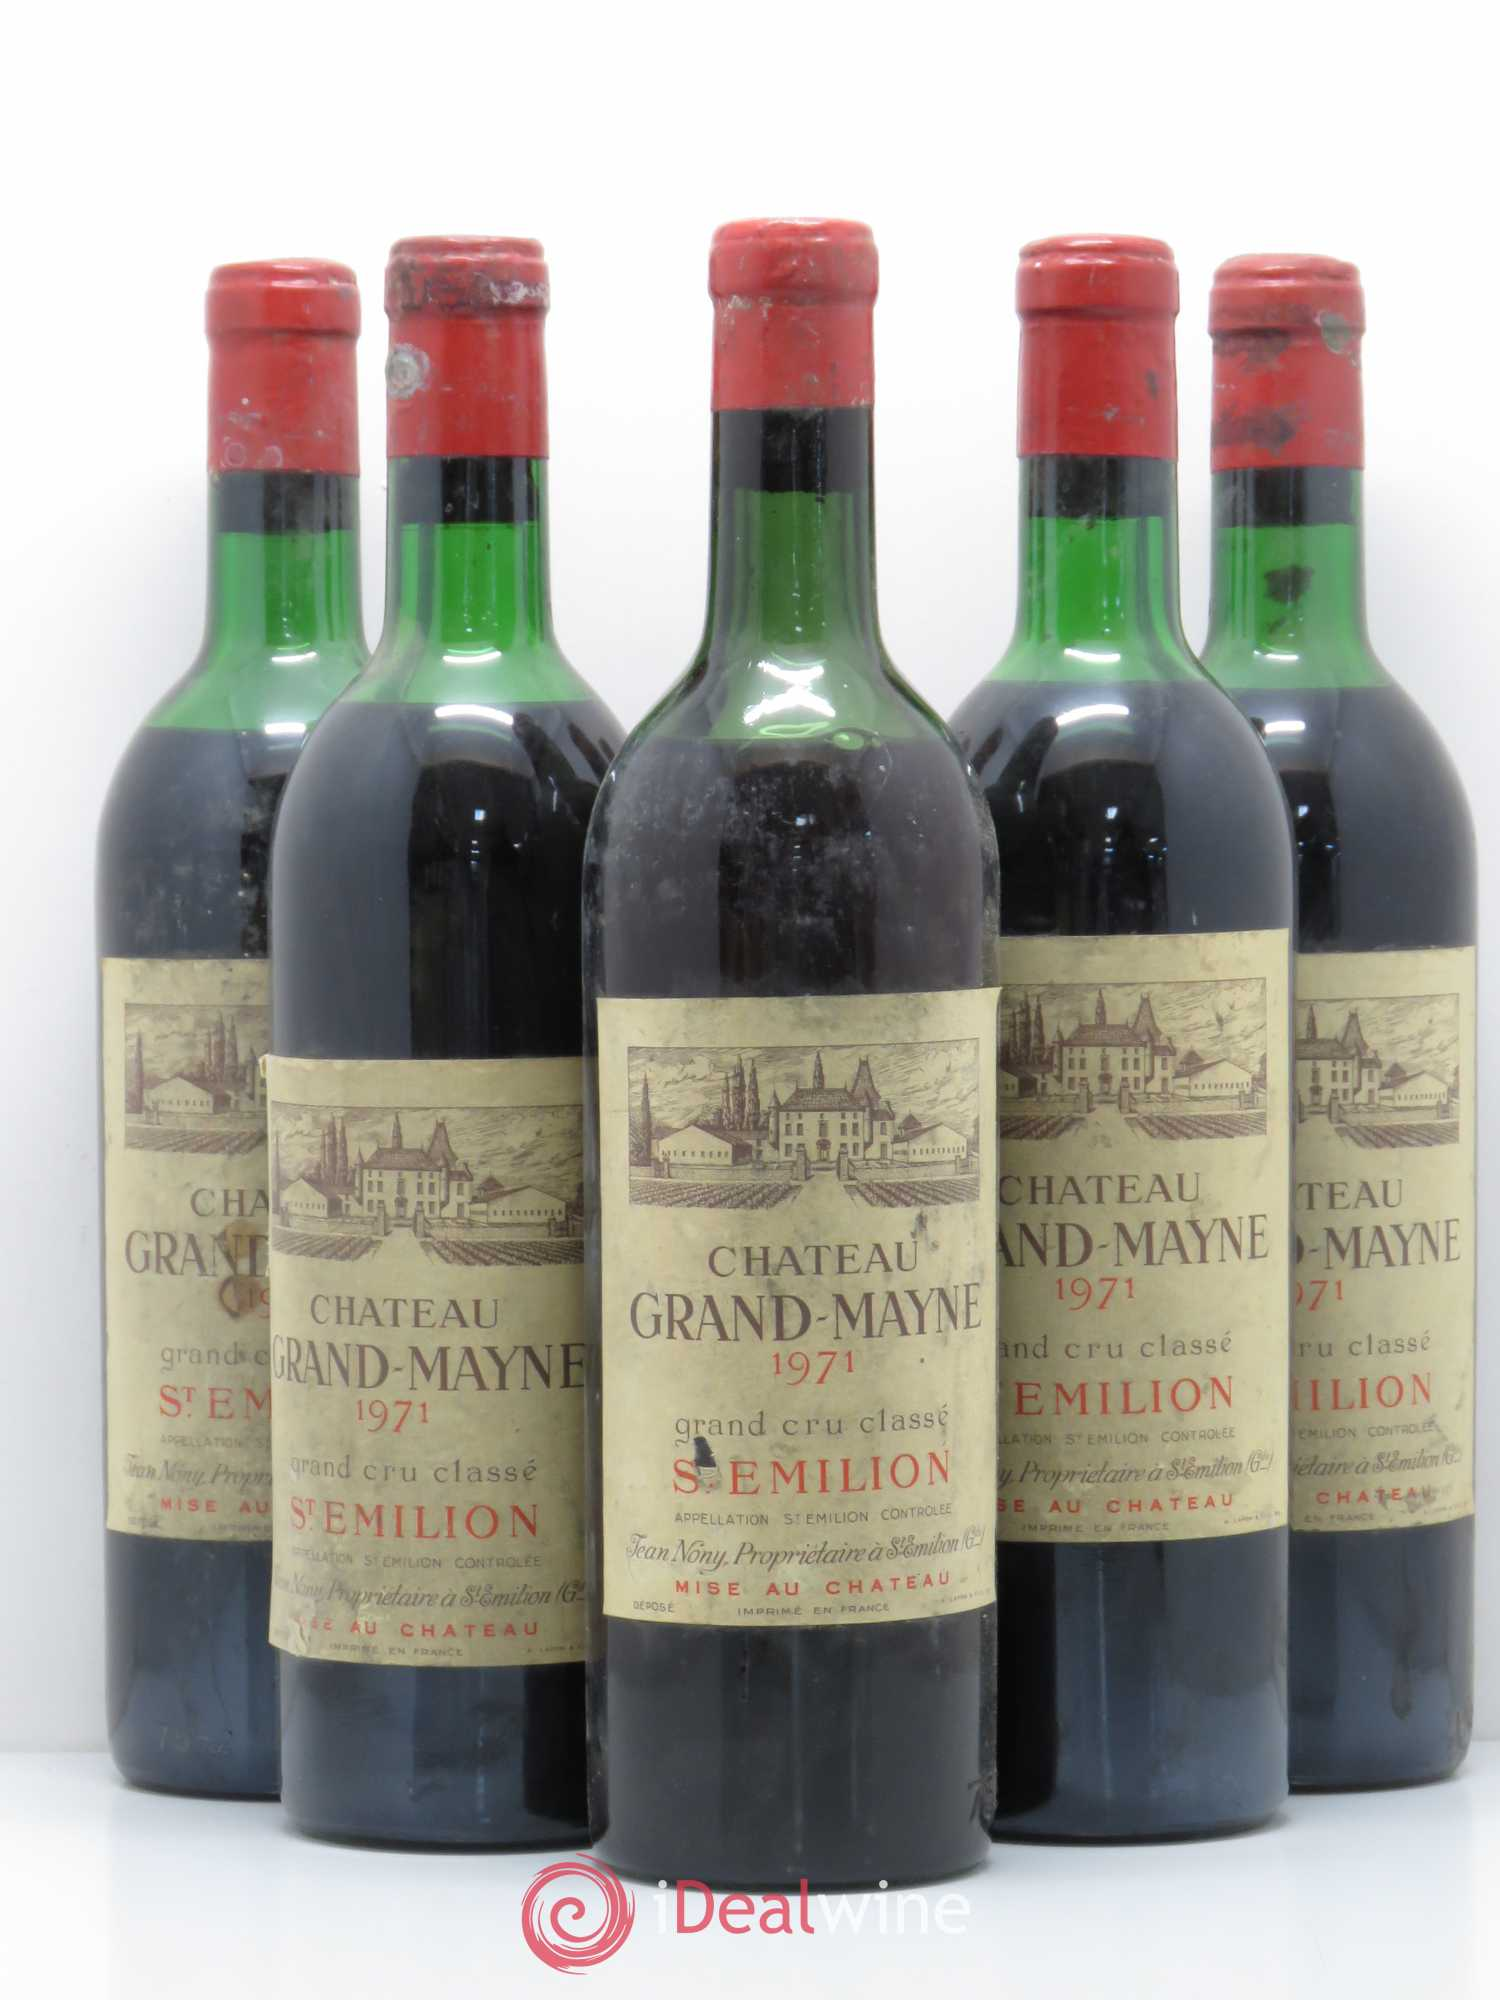 Château Grand Mayne Grand Cru Classé (no reserve) 1971 - Lot of 5 Bottles